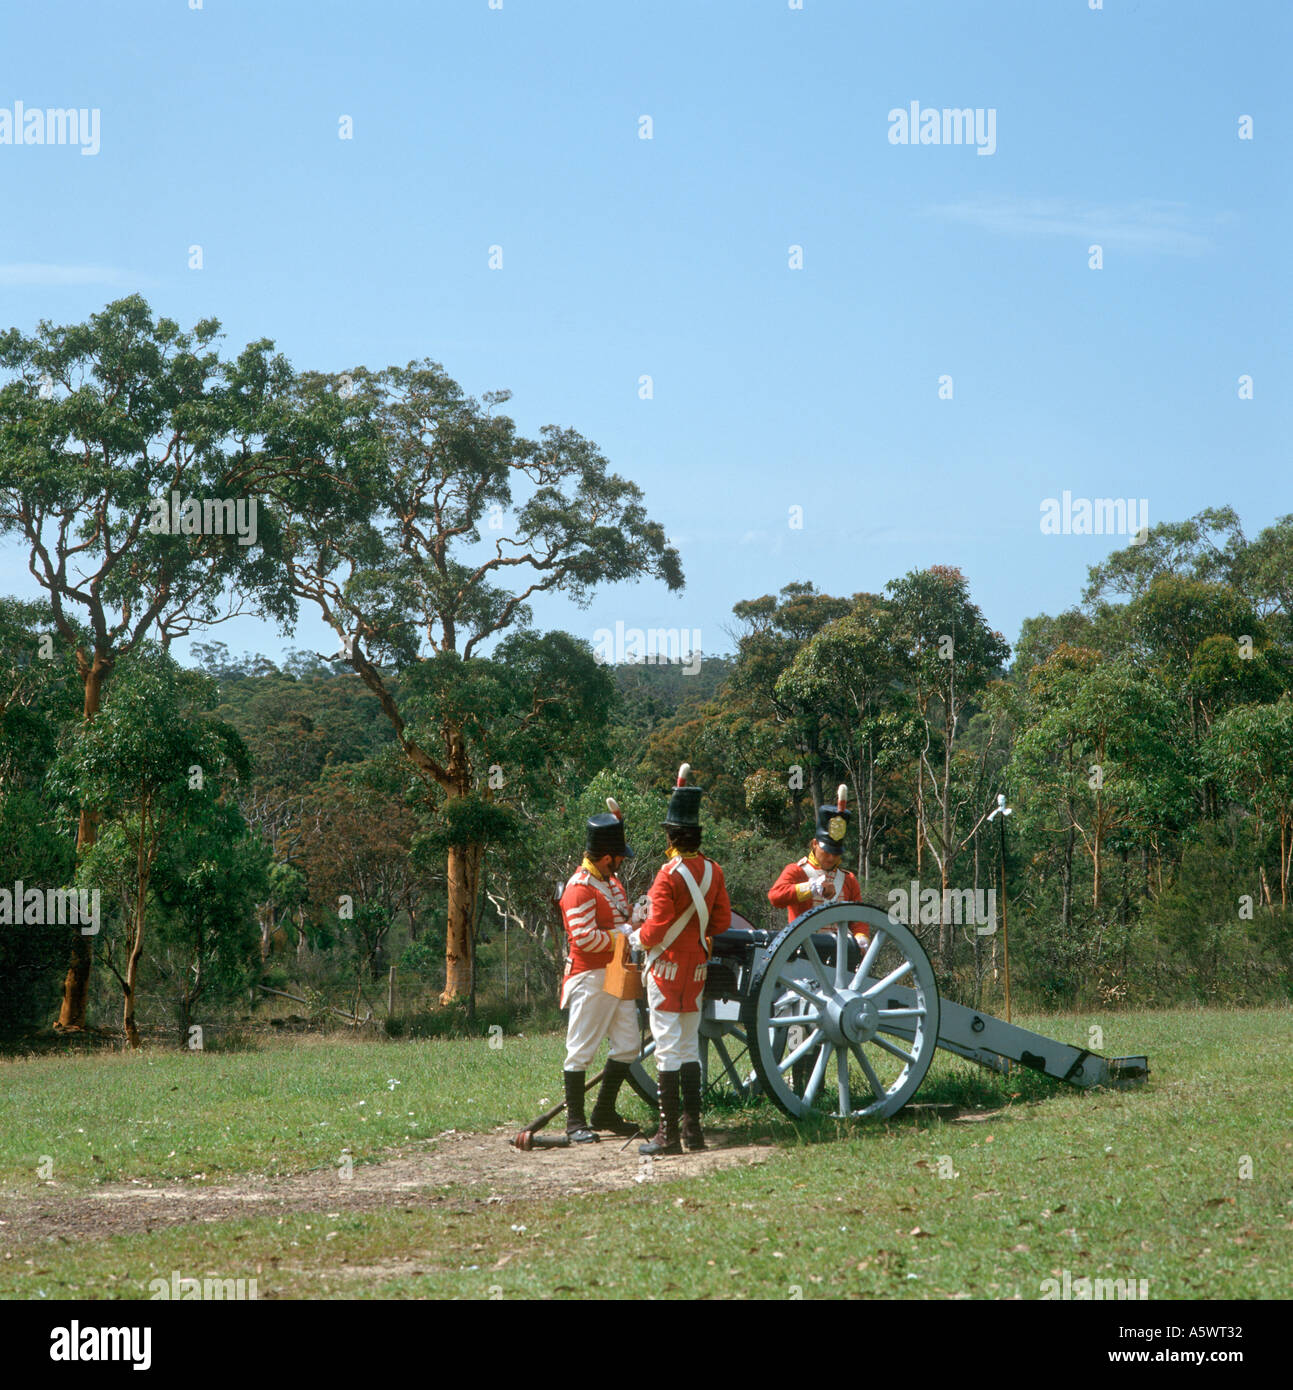 Soldiers in historic Re-enactment, Old Sydney Town, near Sydney, New South Wales, Australia - Stock Image